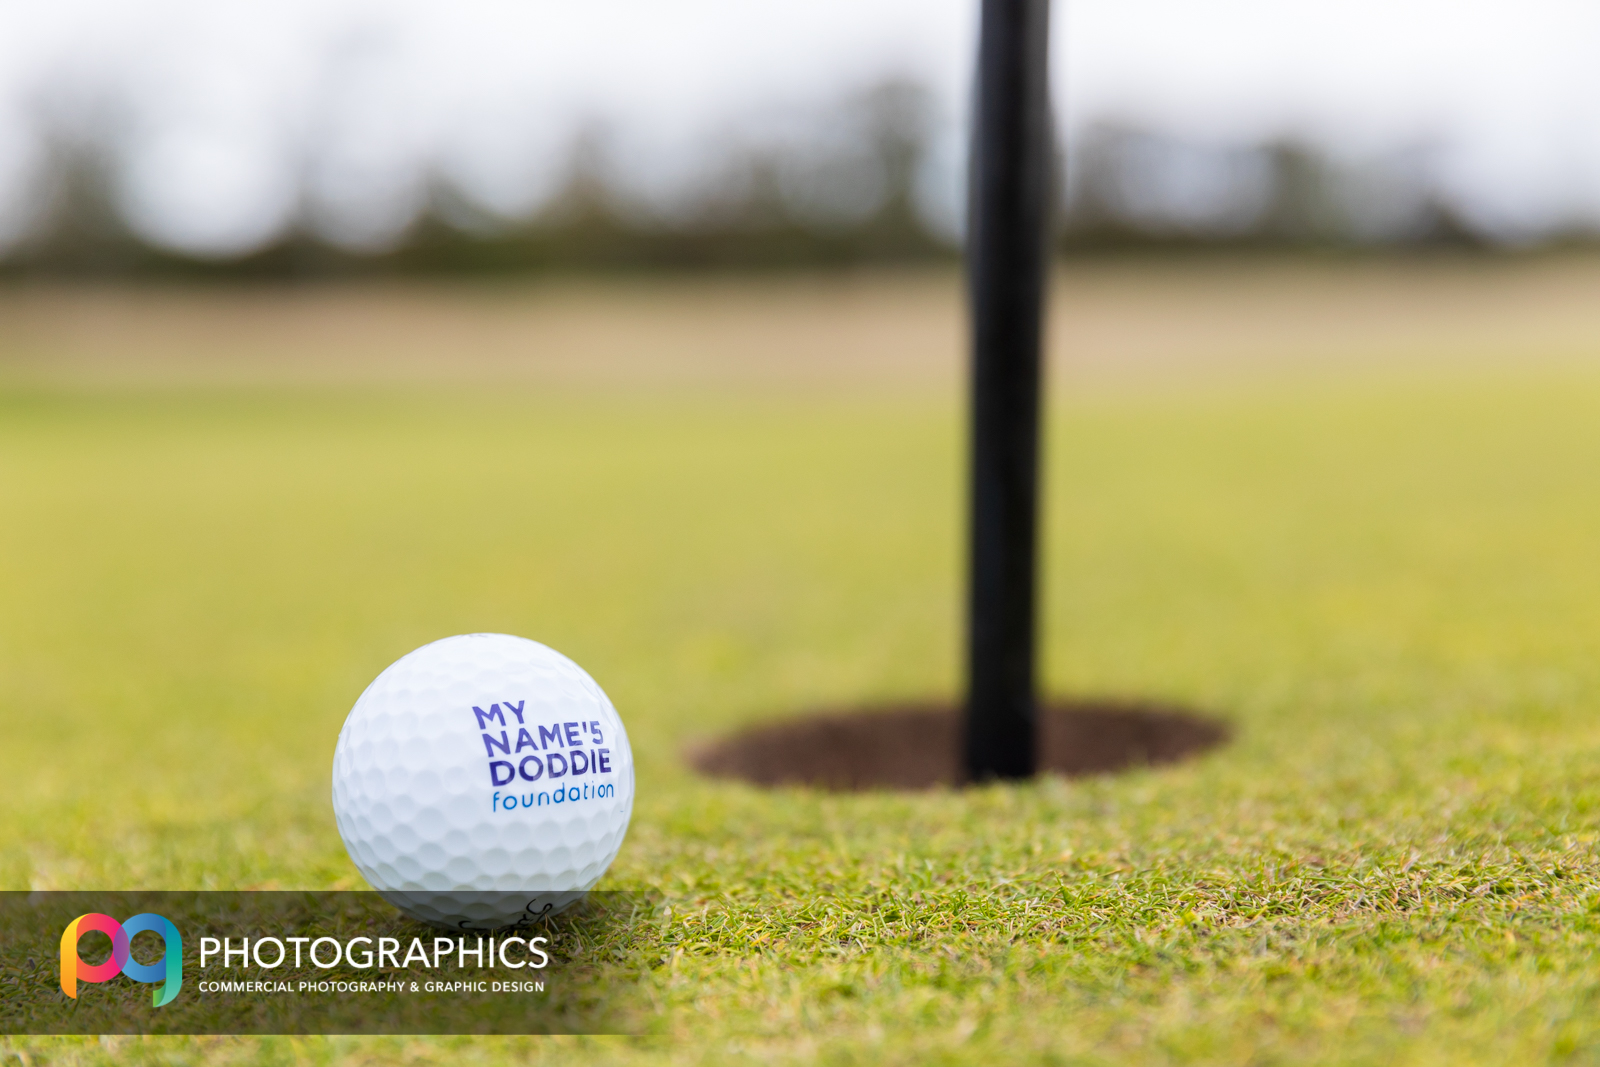 charity-golf-pr-event-photography-glasgow-edinburgh-scotland-1.jpg